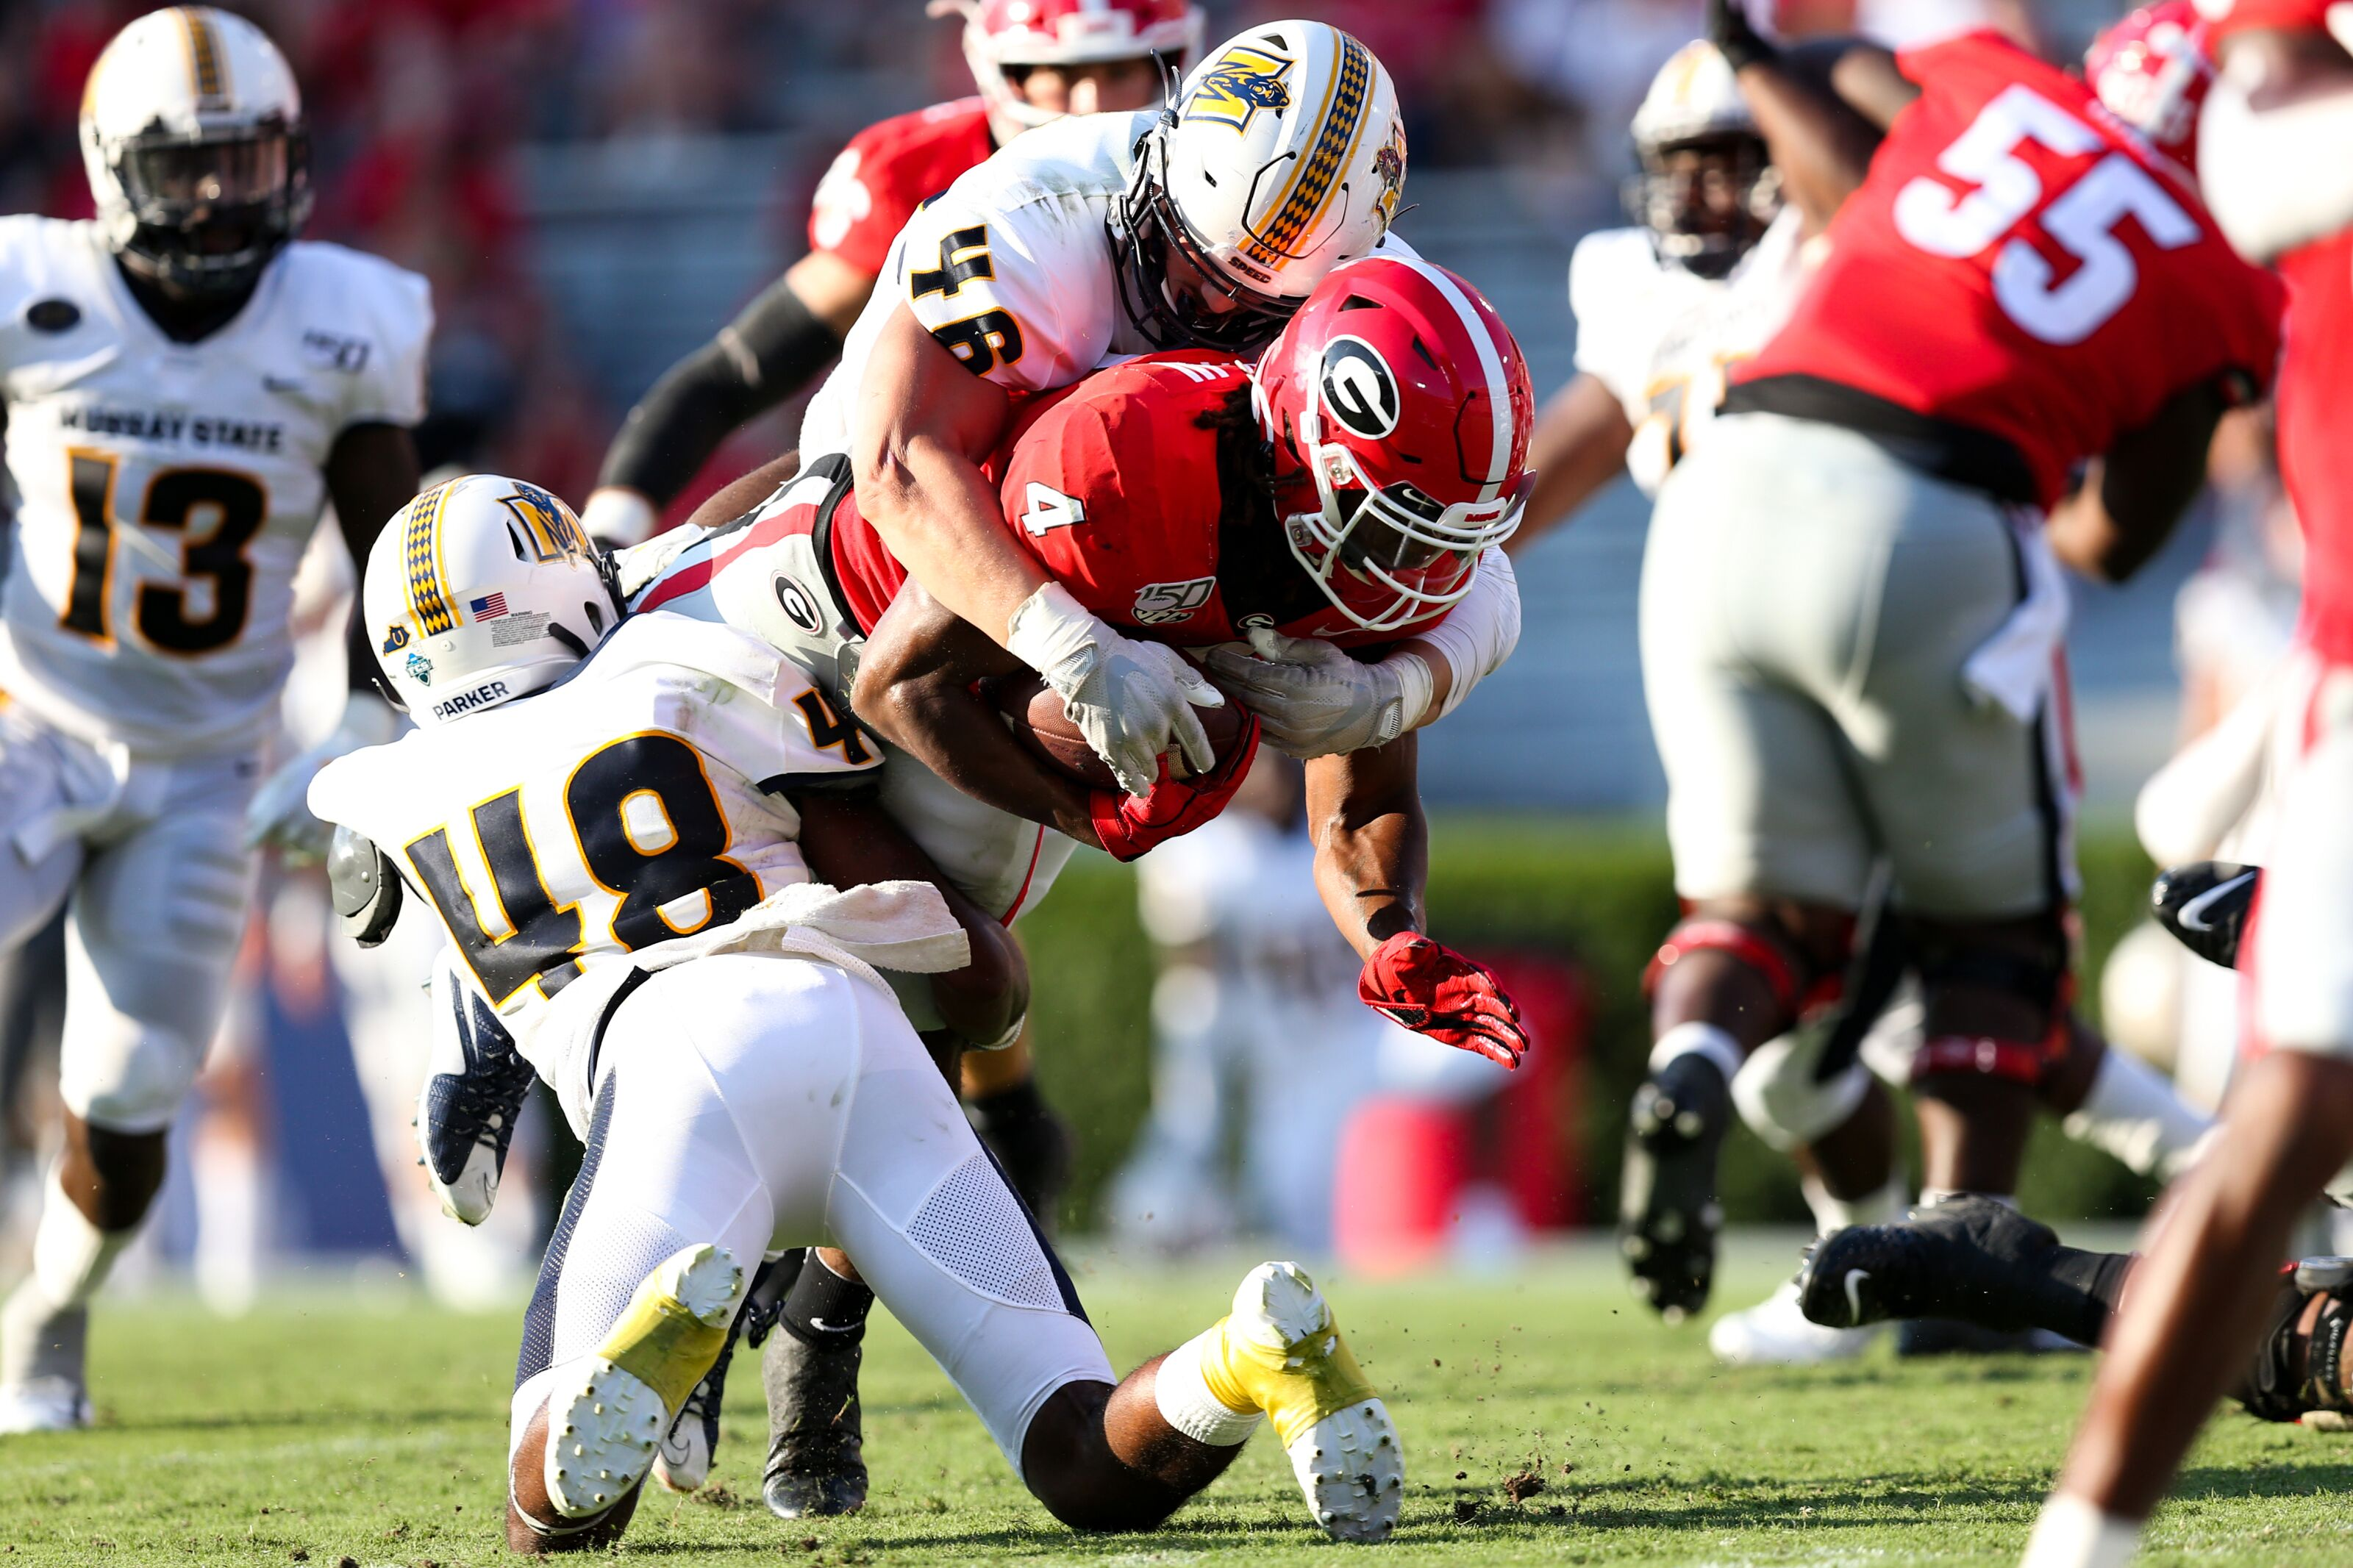 Georgia football's good and bad takeaways from Murray State